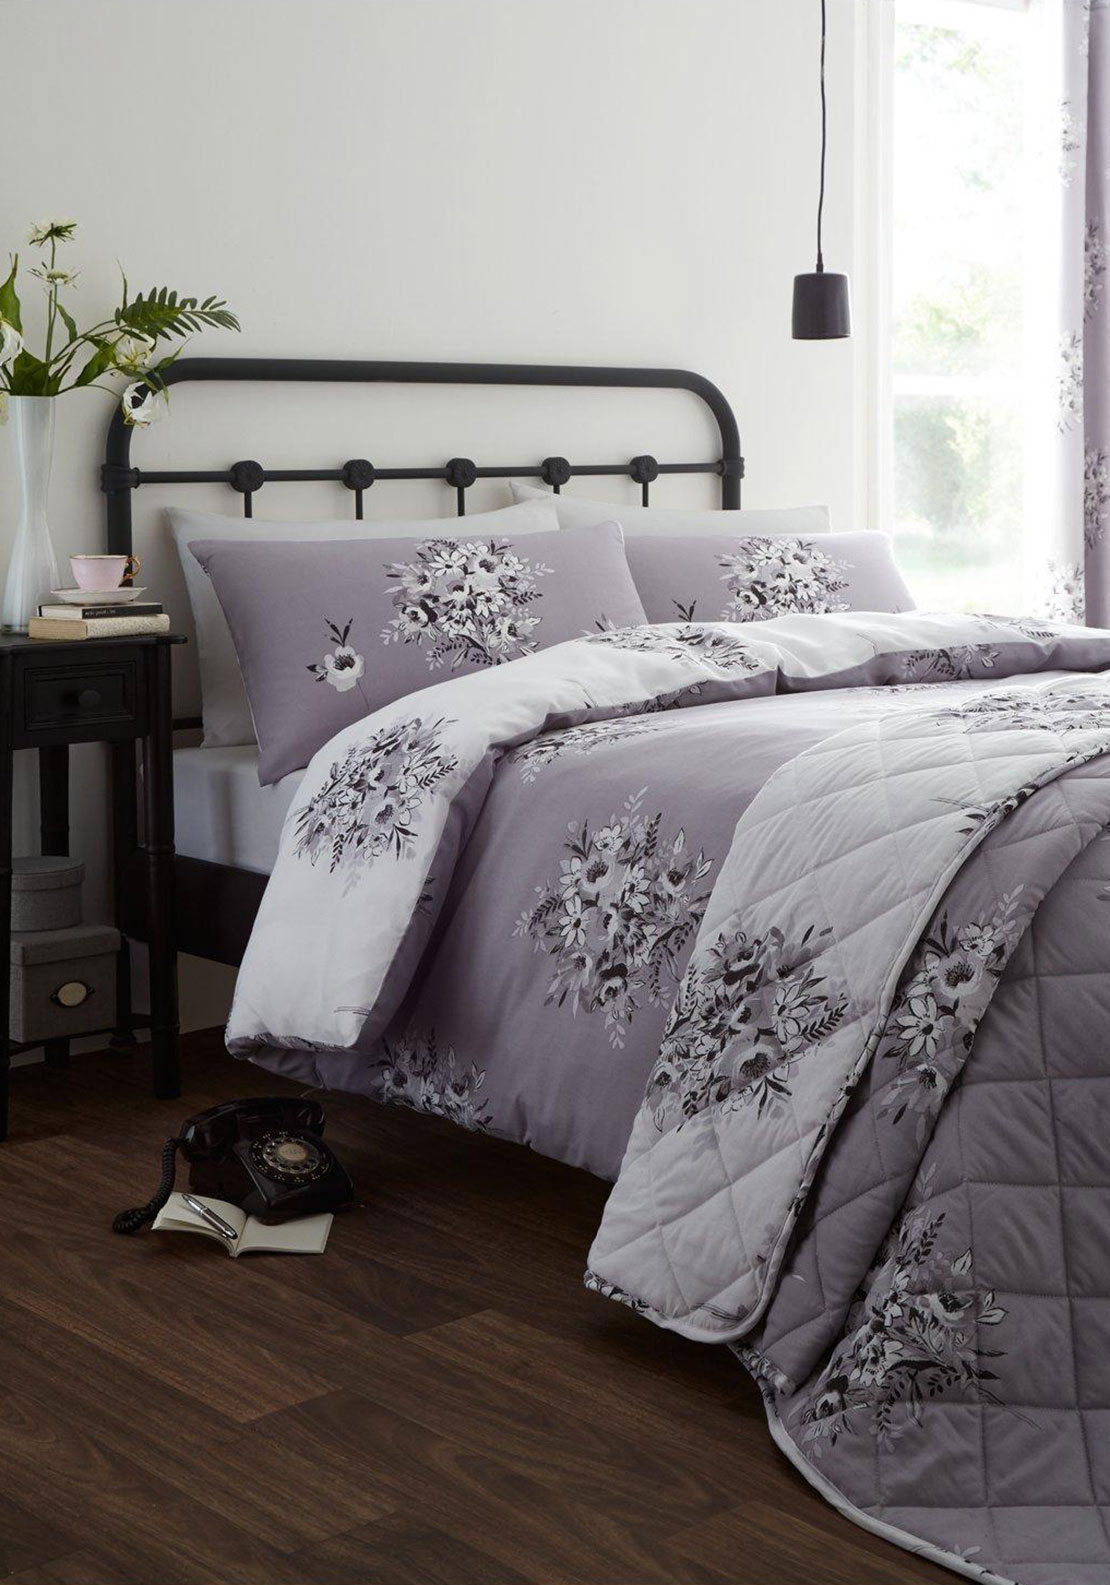 Catherine Lansfield Floral Bouquet Bedspread, 220 x 230cm